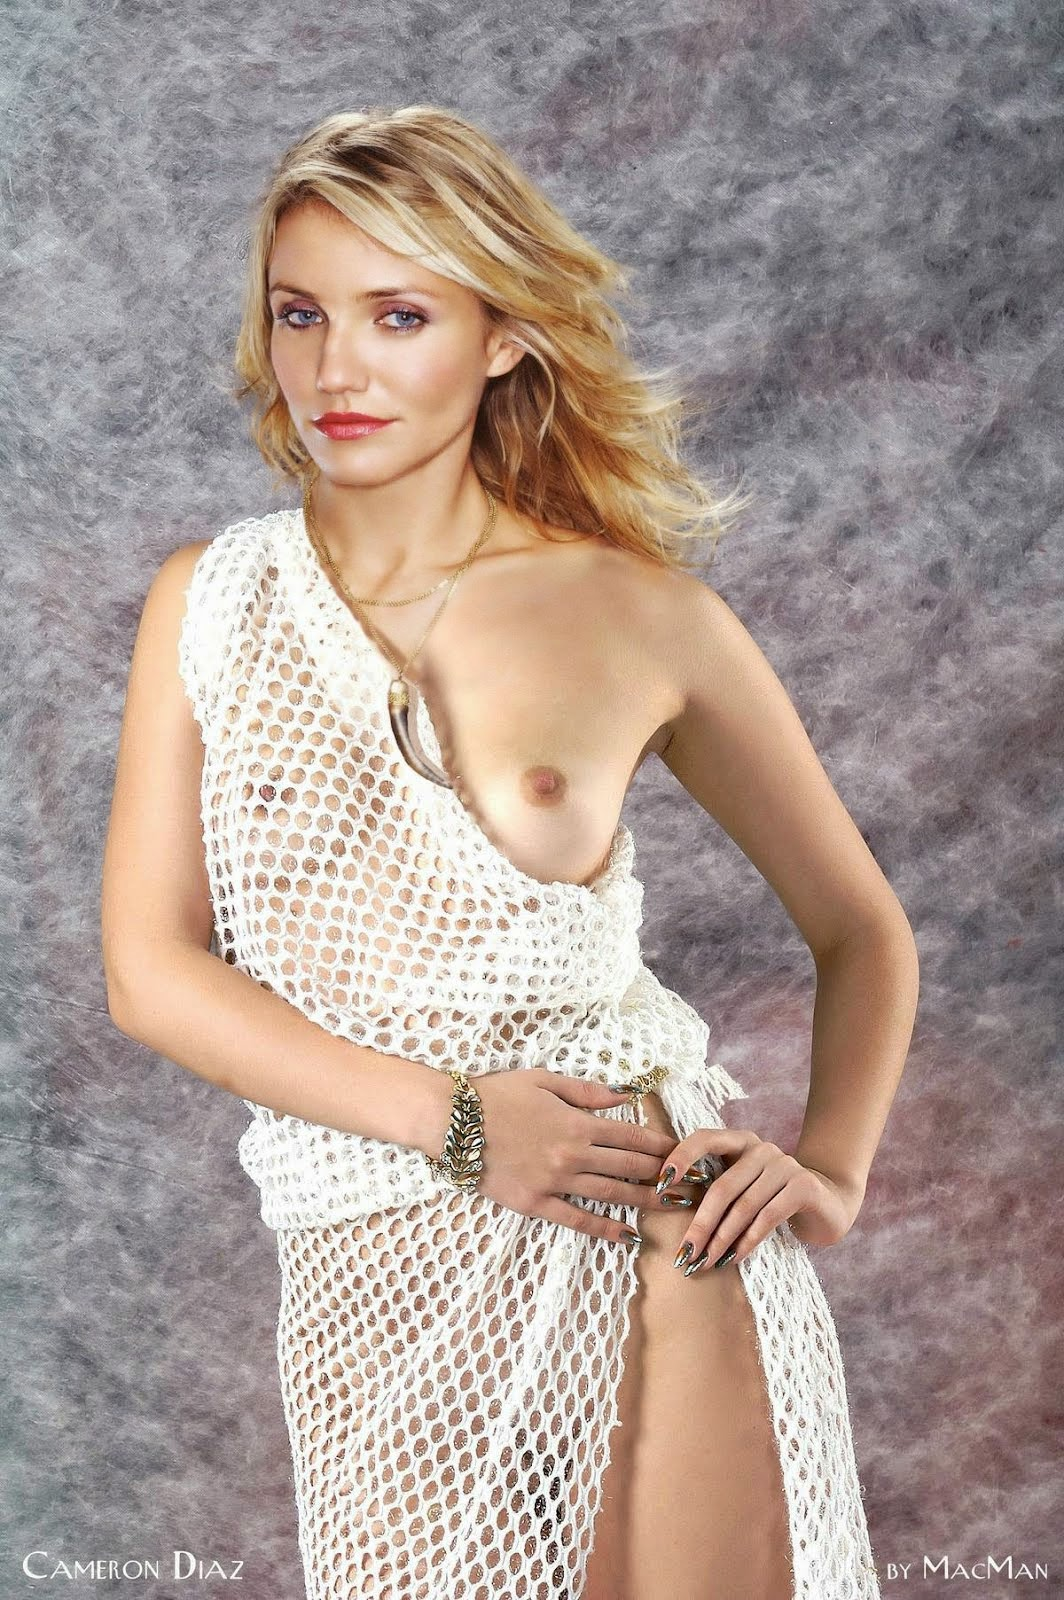 Body cameron diaz naked